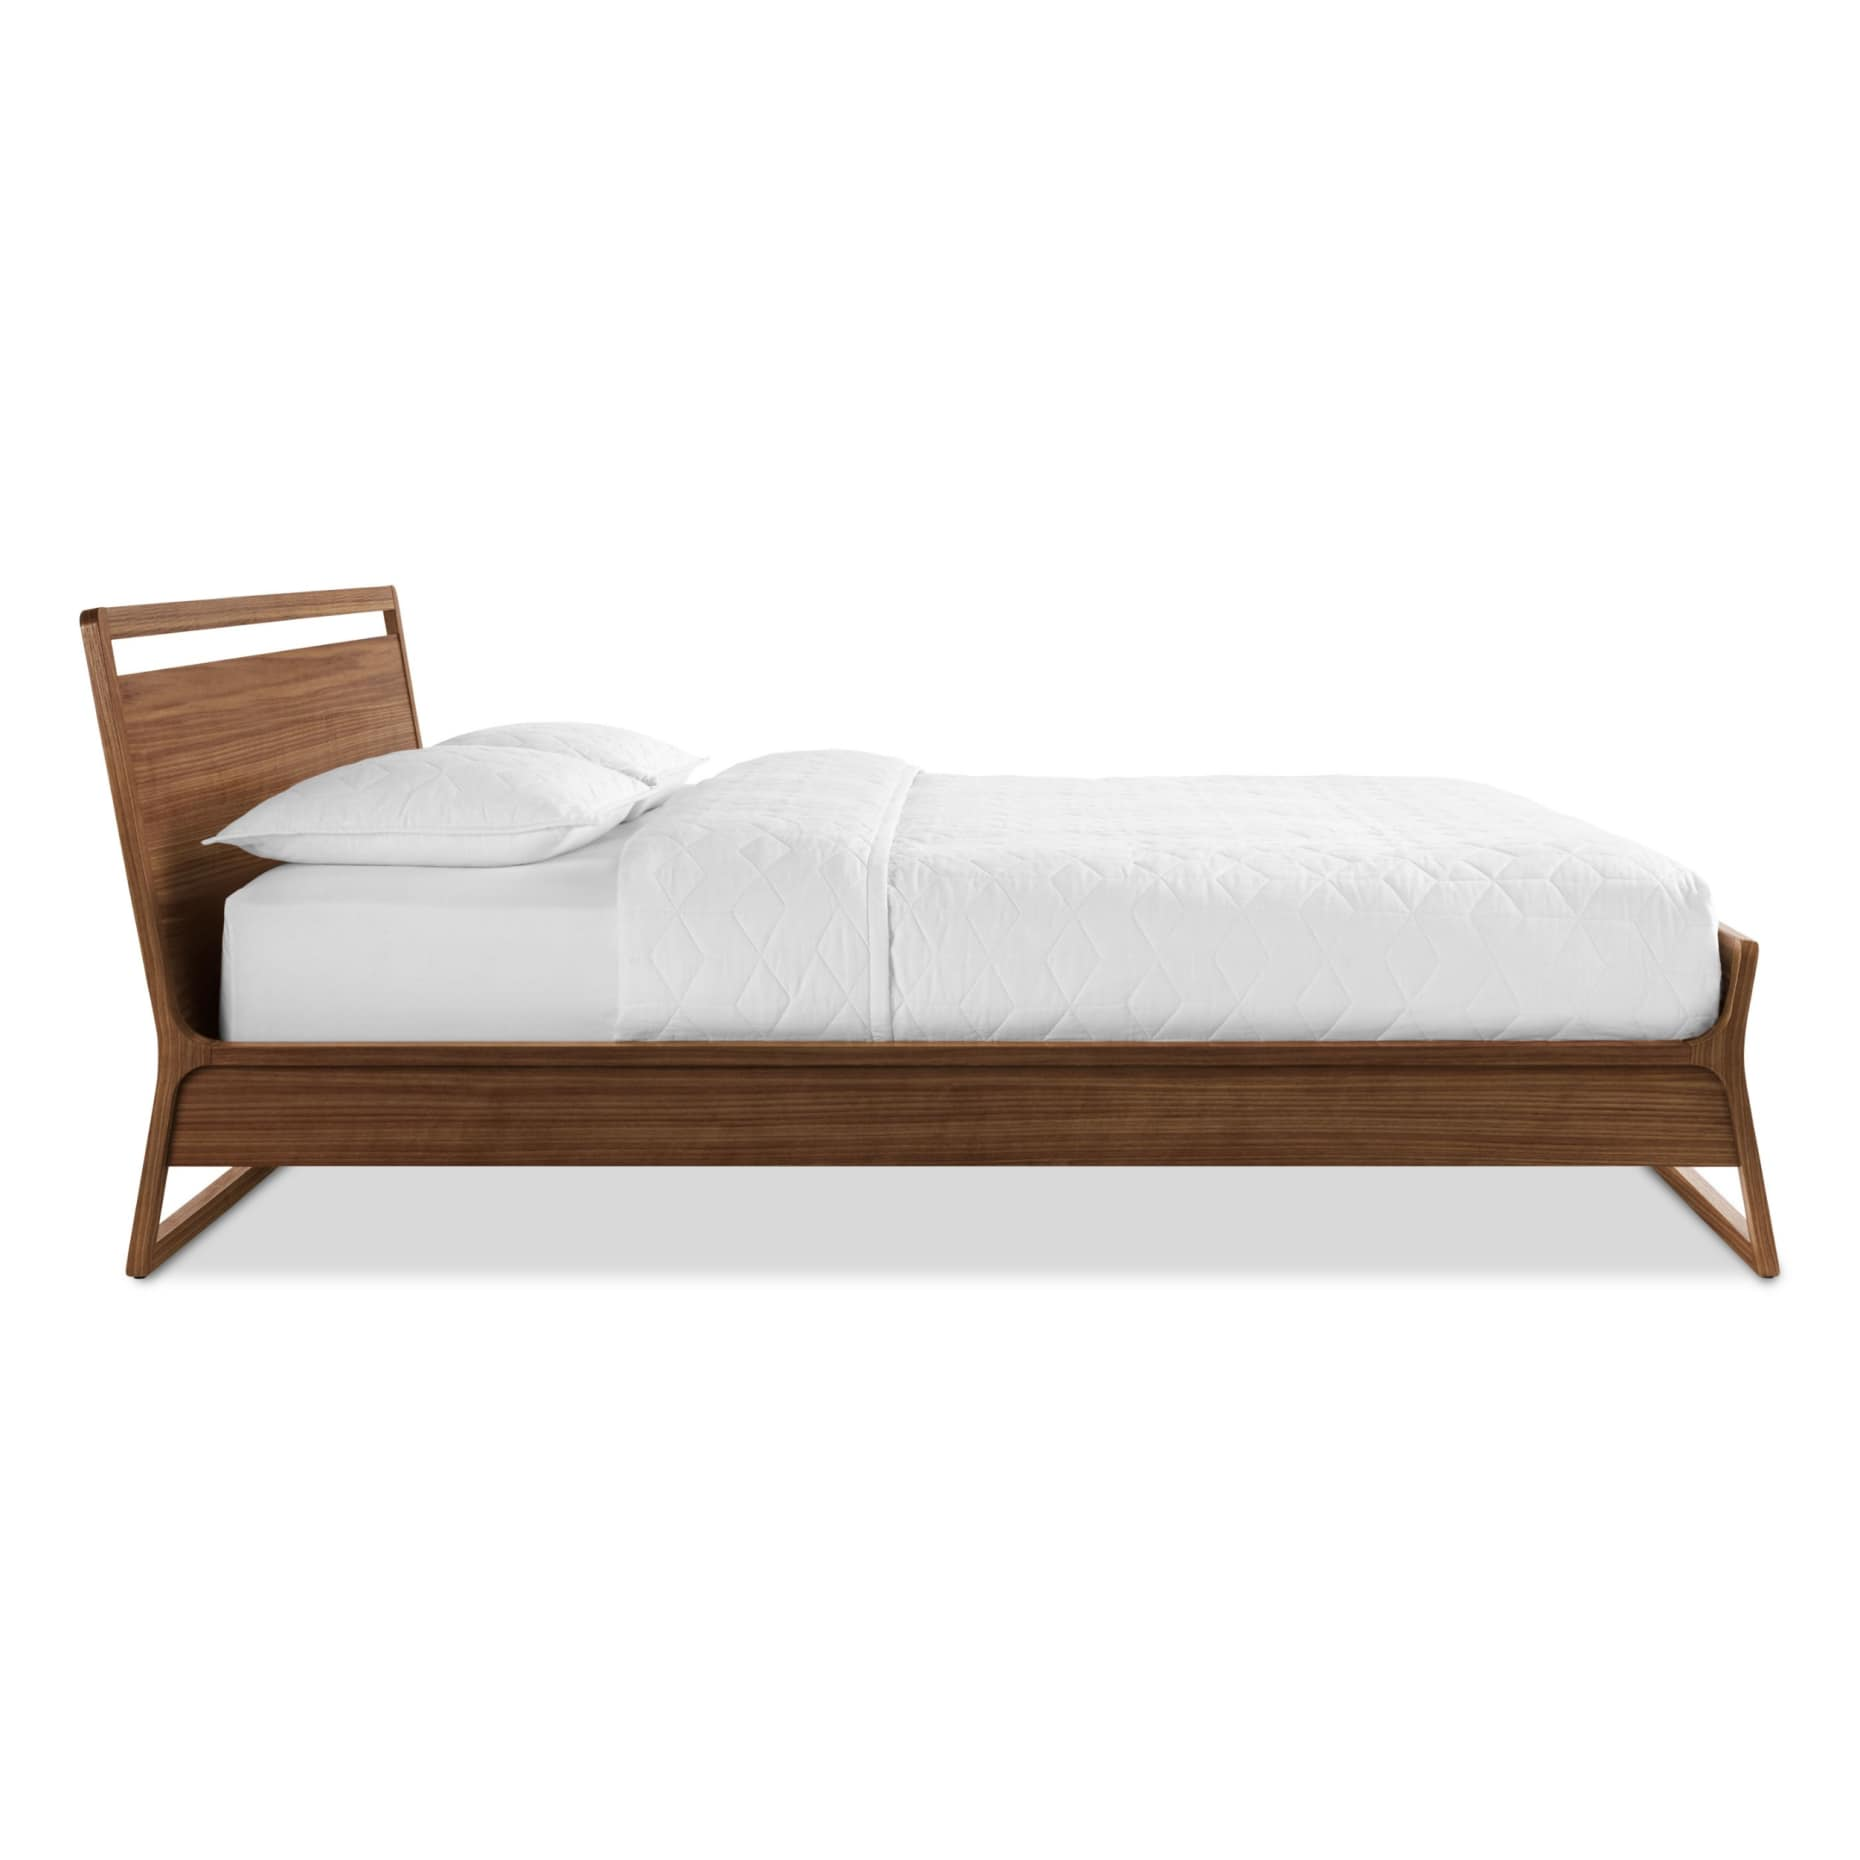 wr1 kgwood wl side woodrow king bed walnut 1